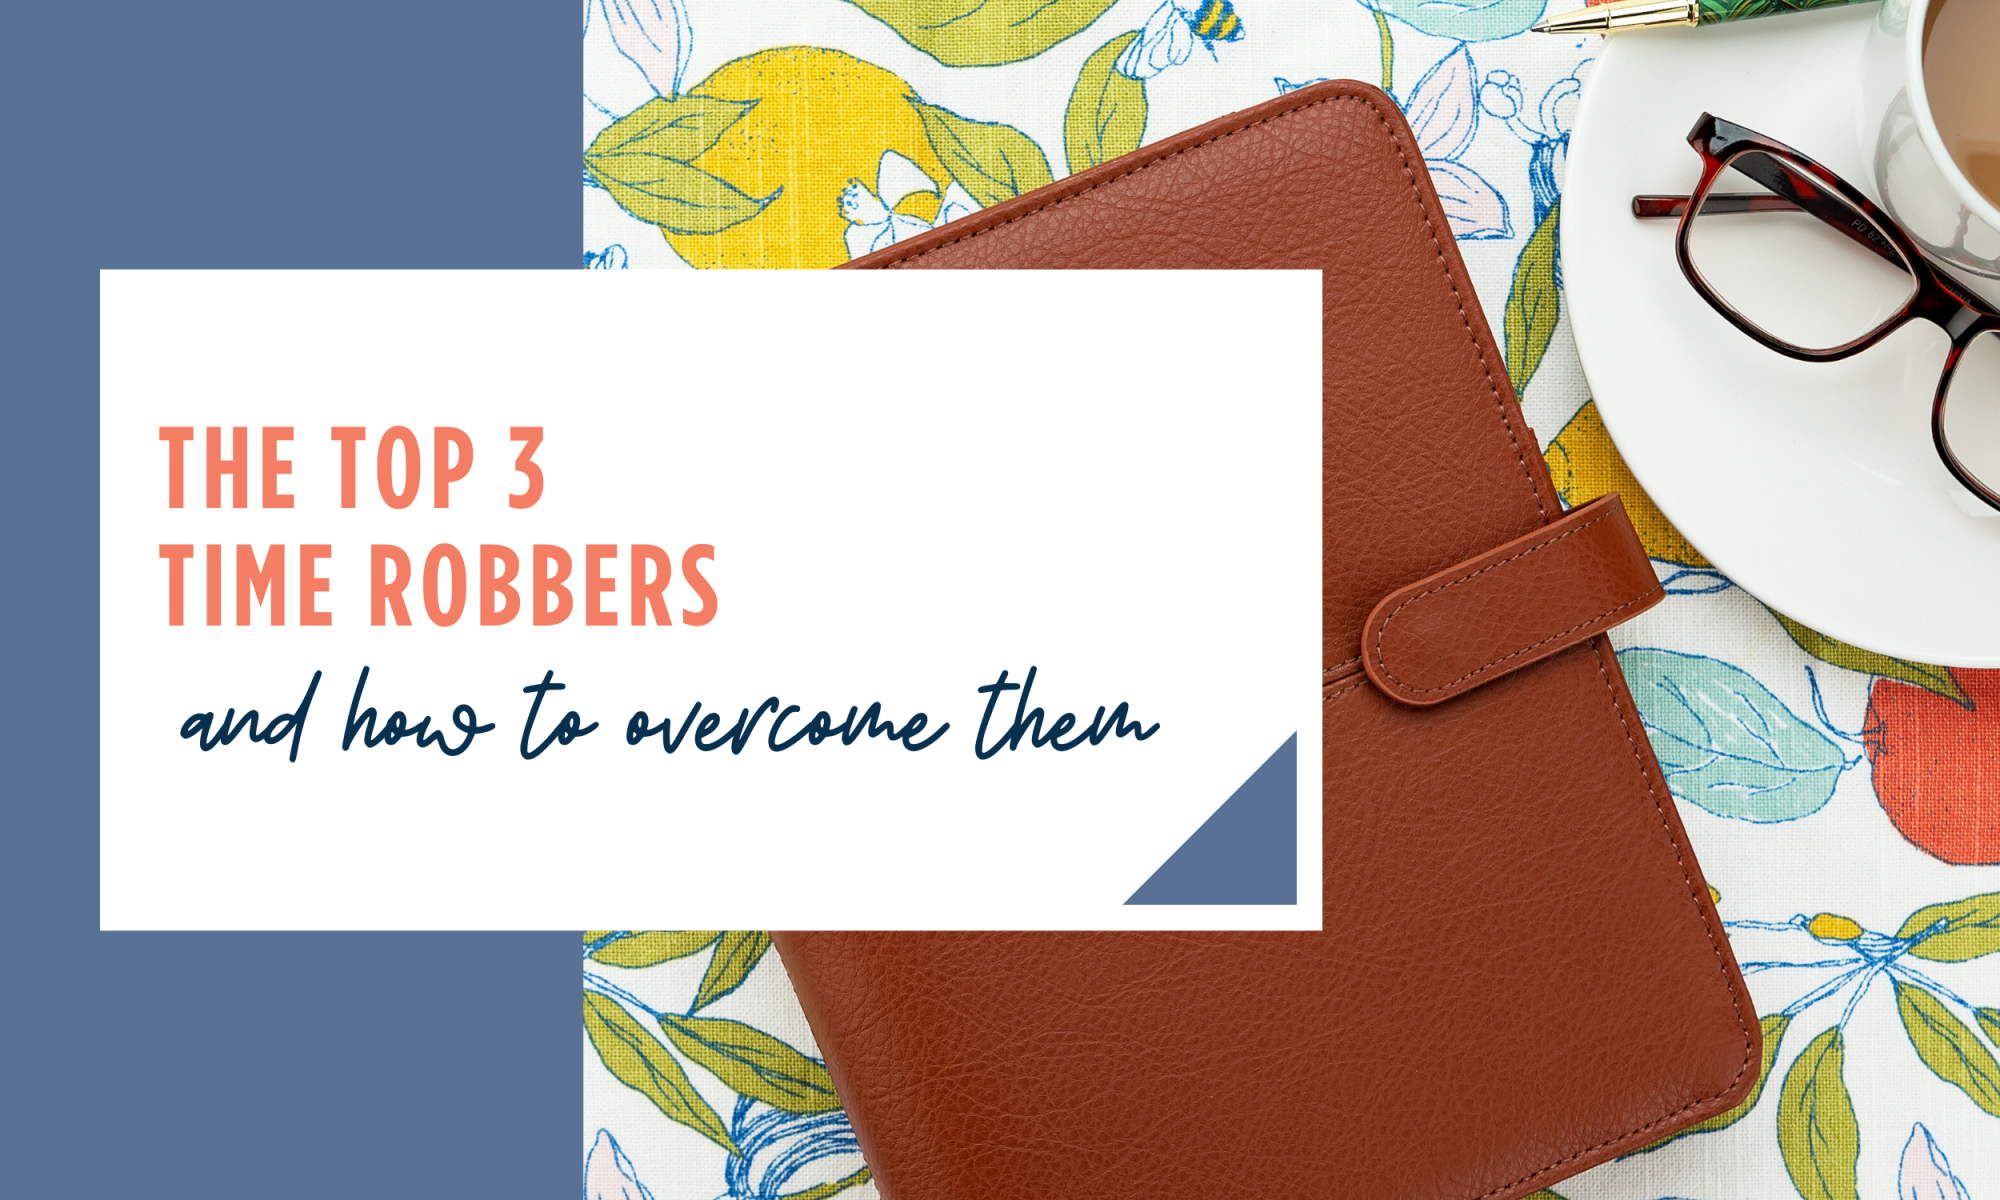 The top three time robbers and how to overcome them